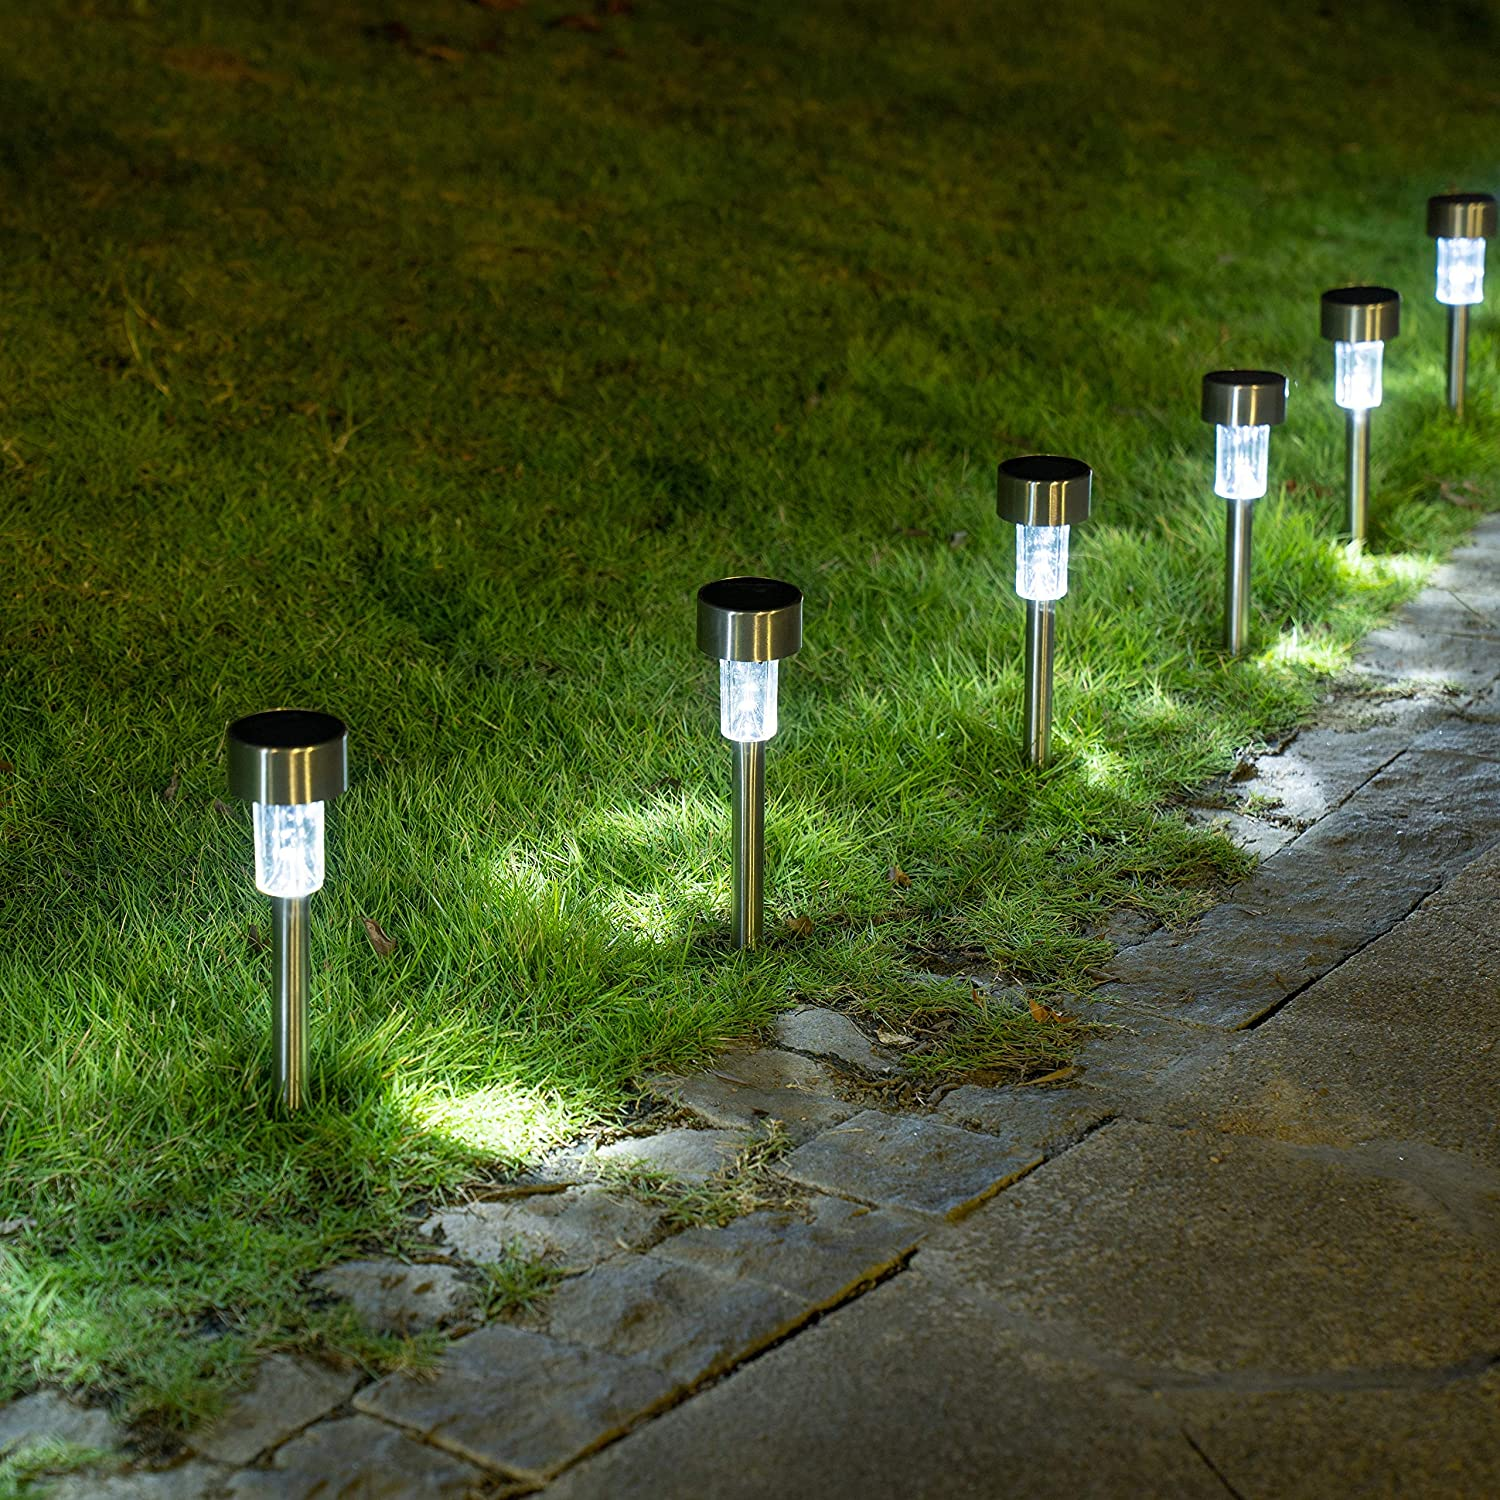 Sowsun Rapid rise SEAL limited product Solar Pathway Lights Gar Outdoor Landscape Powered